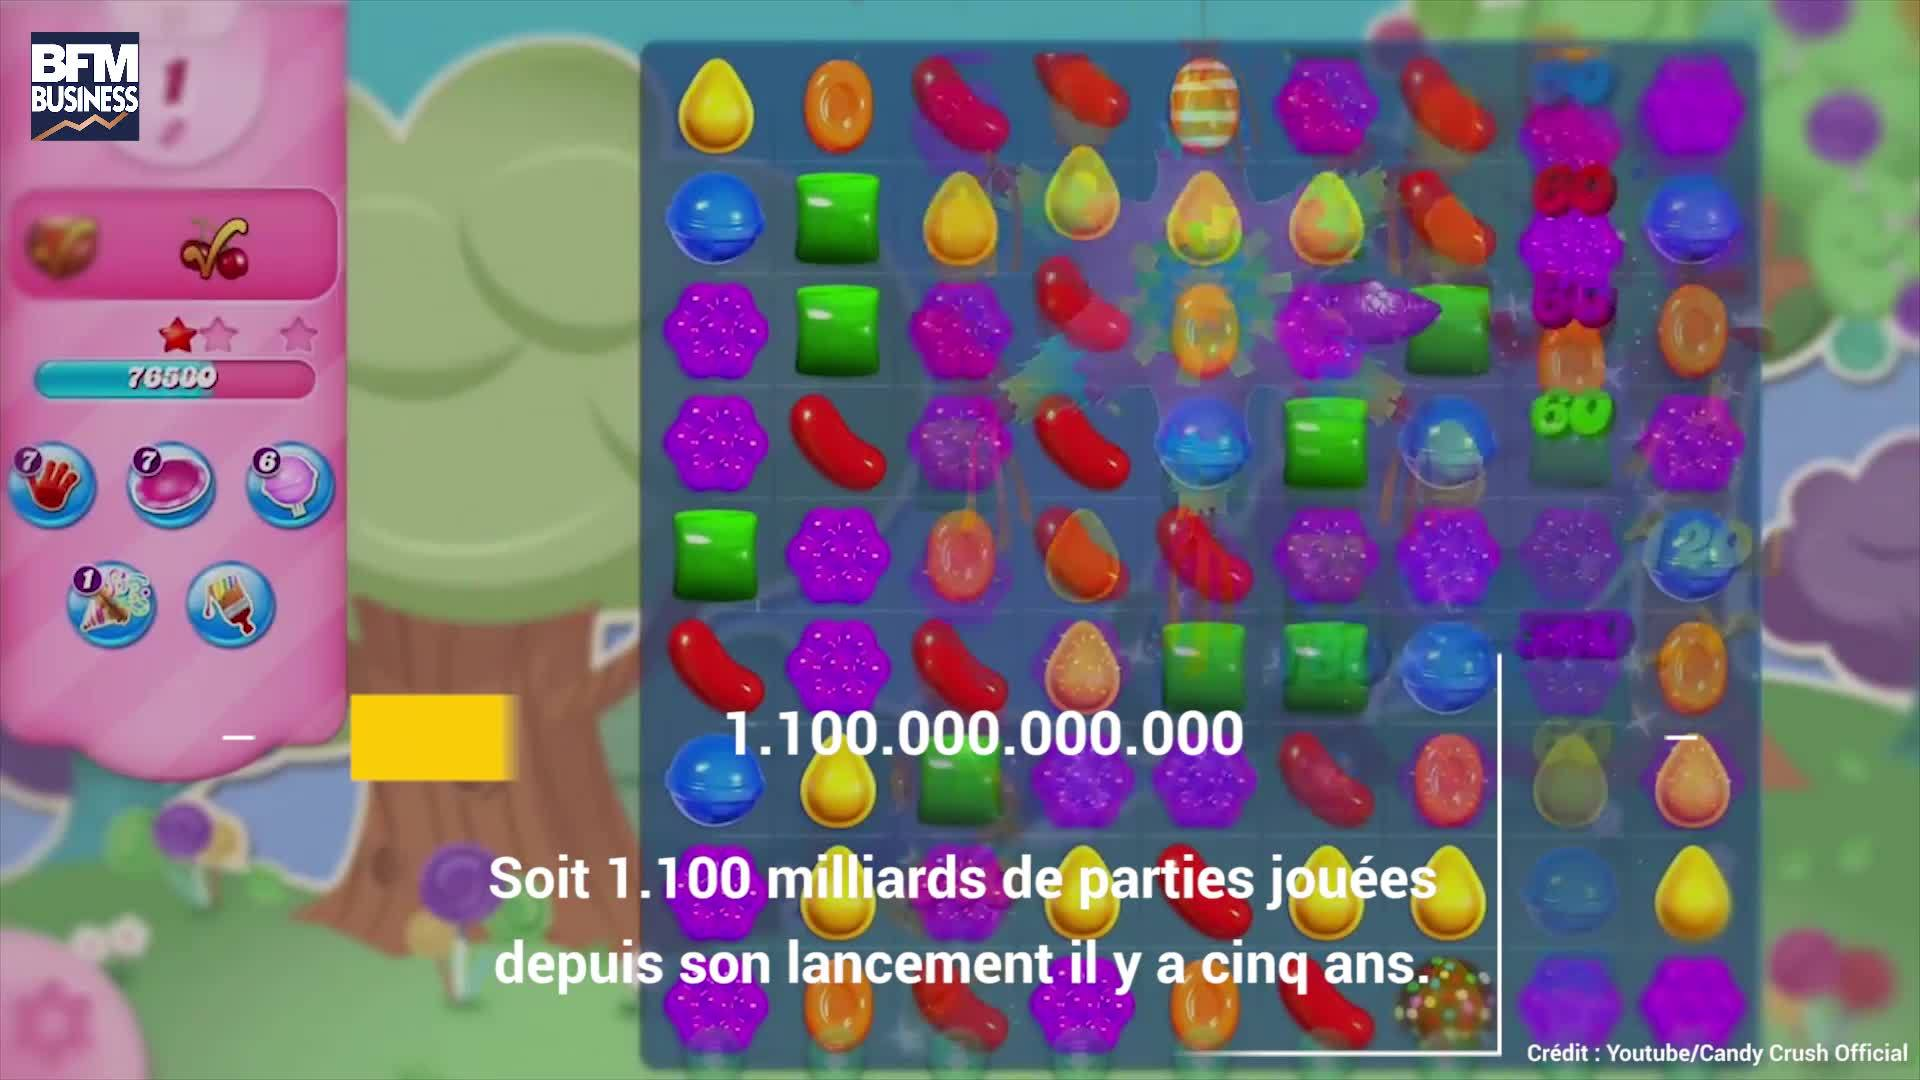 EN VIDEO - 7 choses que vous ignoriez sur Candy Crush